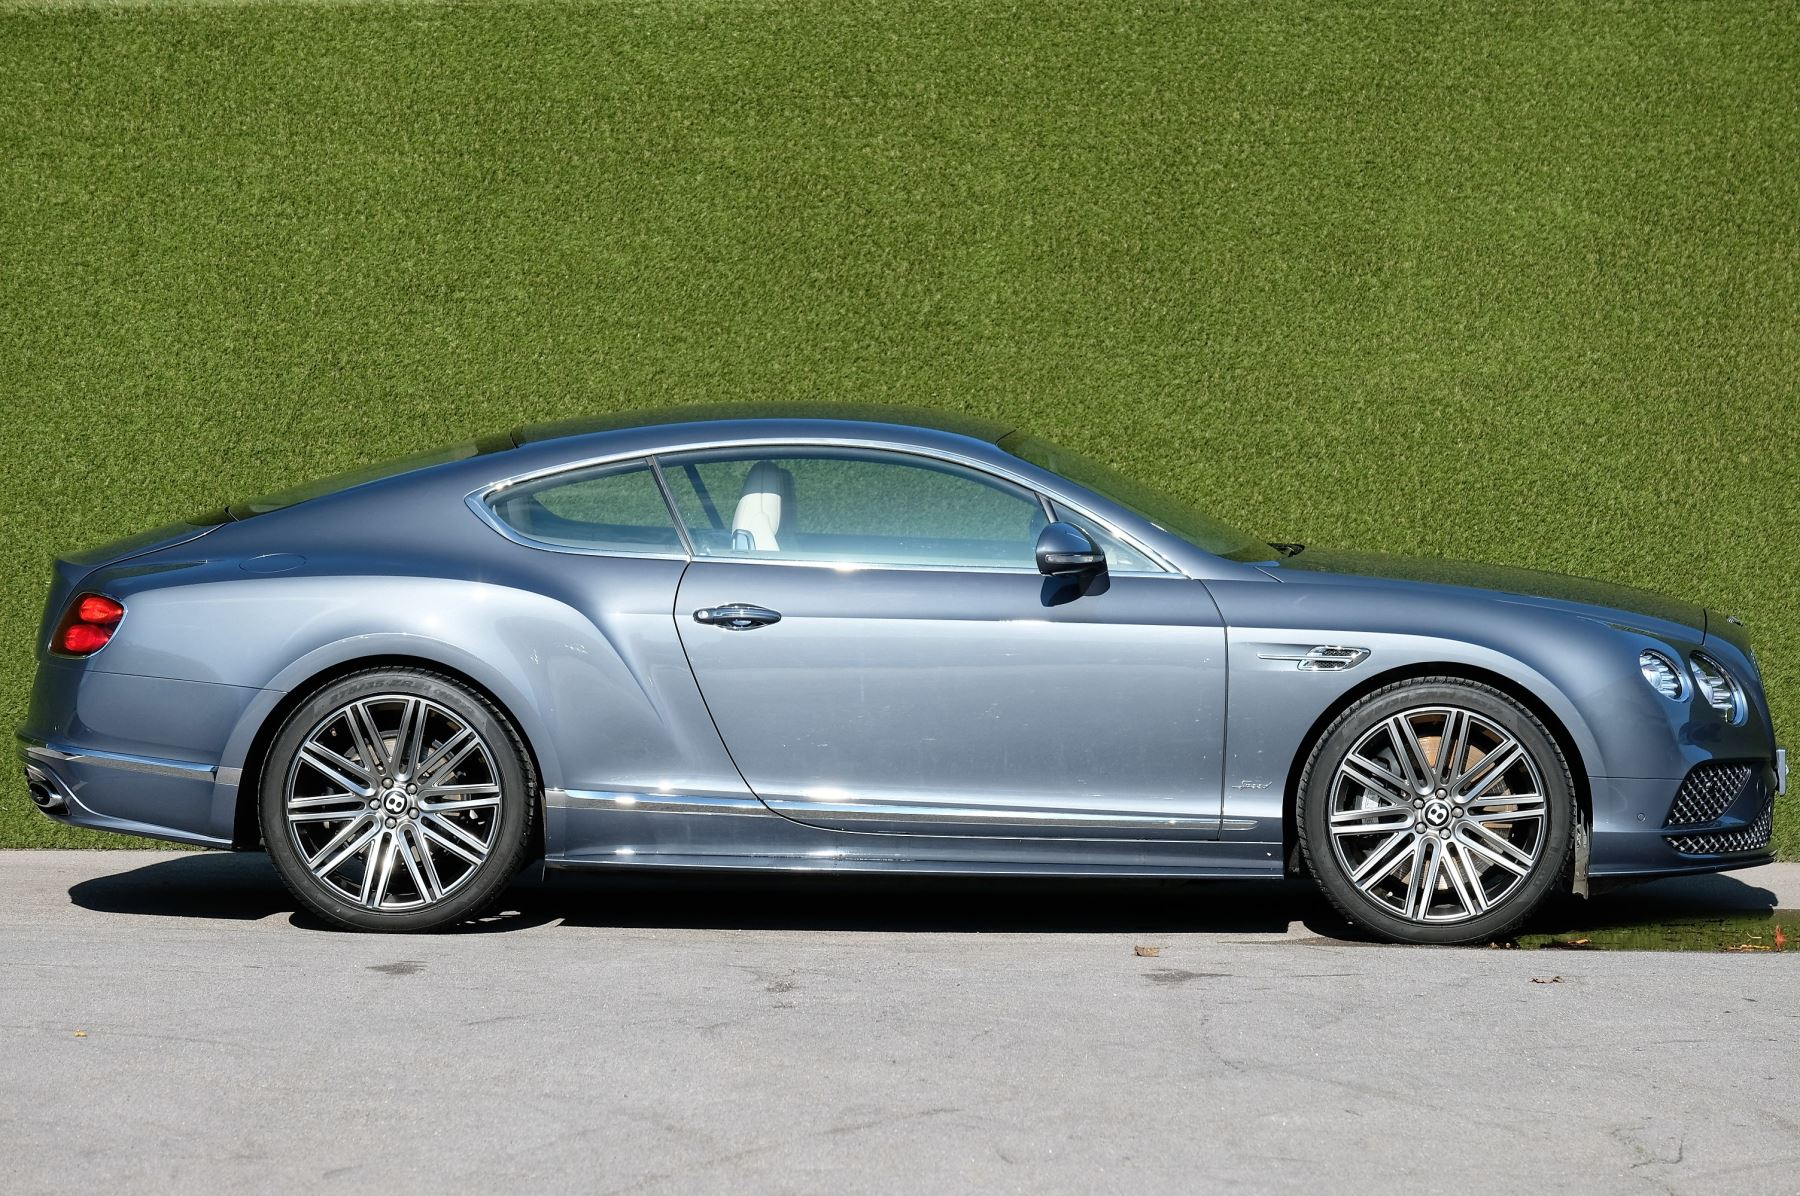 Bentley Continental GT 0.0 6.0 W12 (635) Speed 2dr